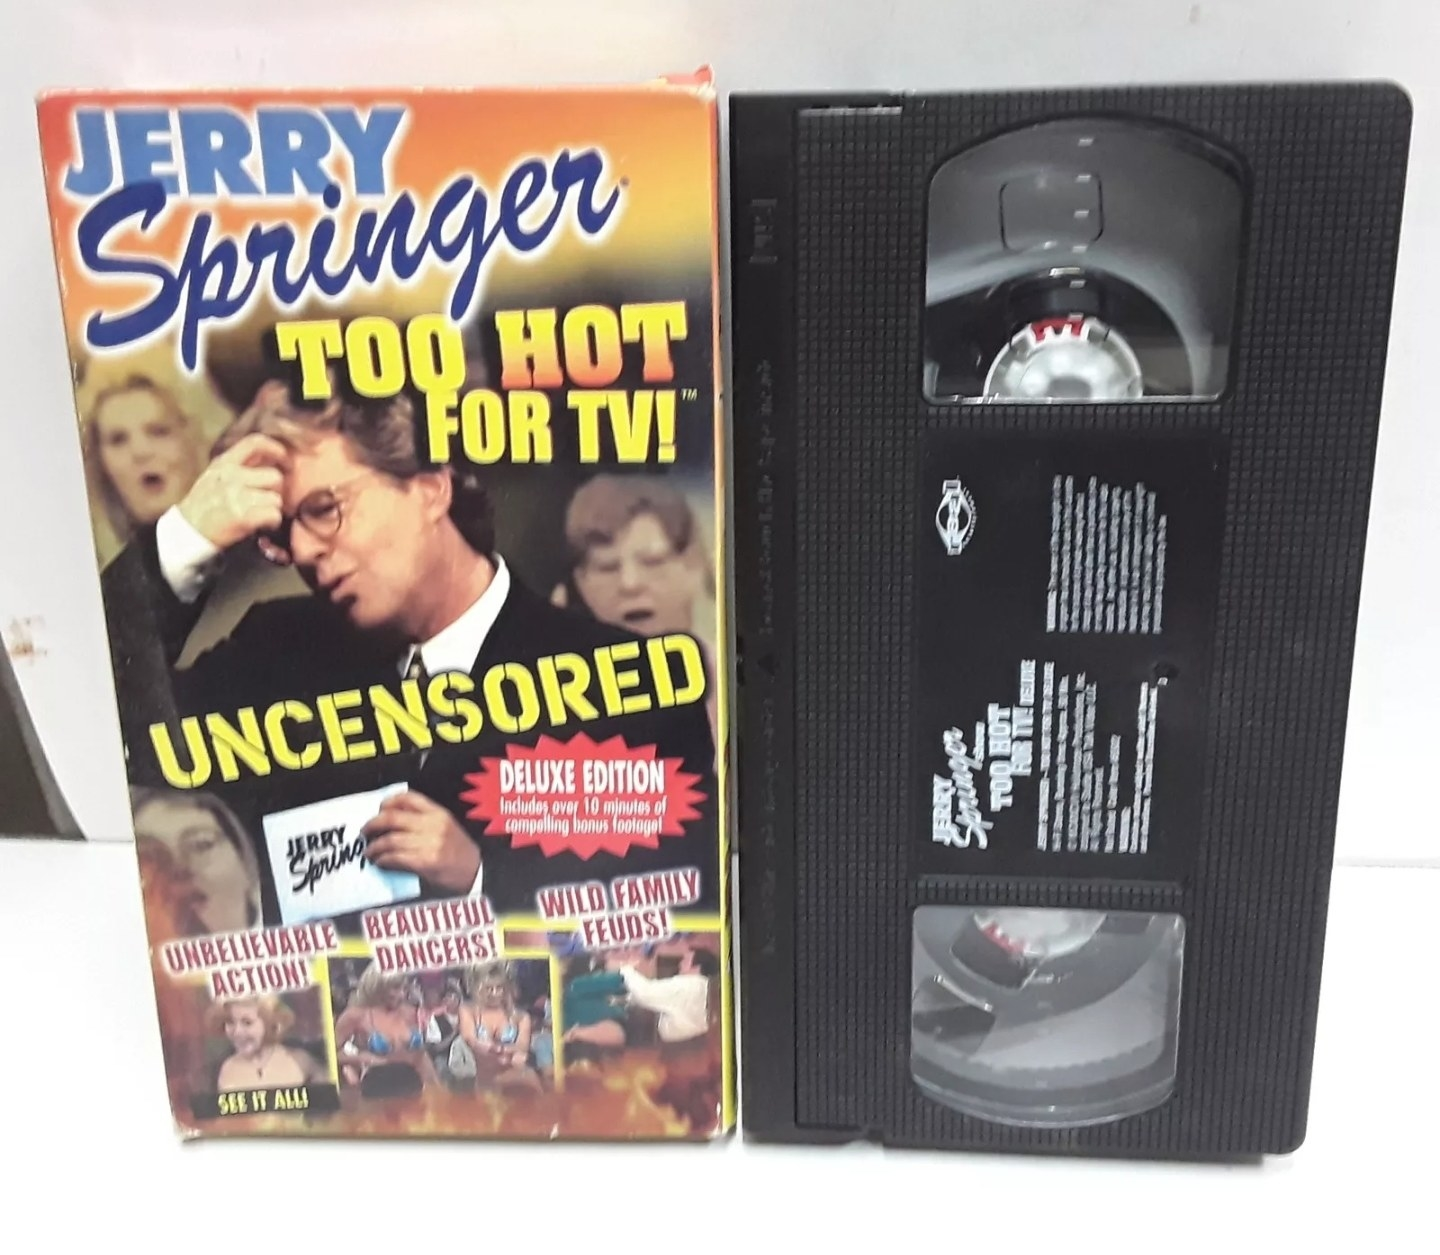 Photo of VHS tape with the Jerry Springer tape cover